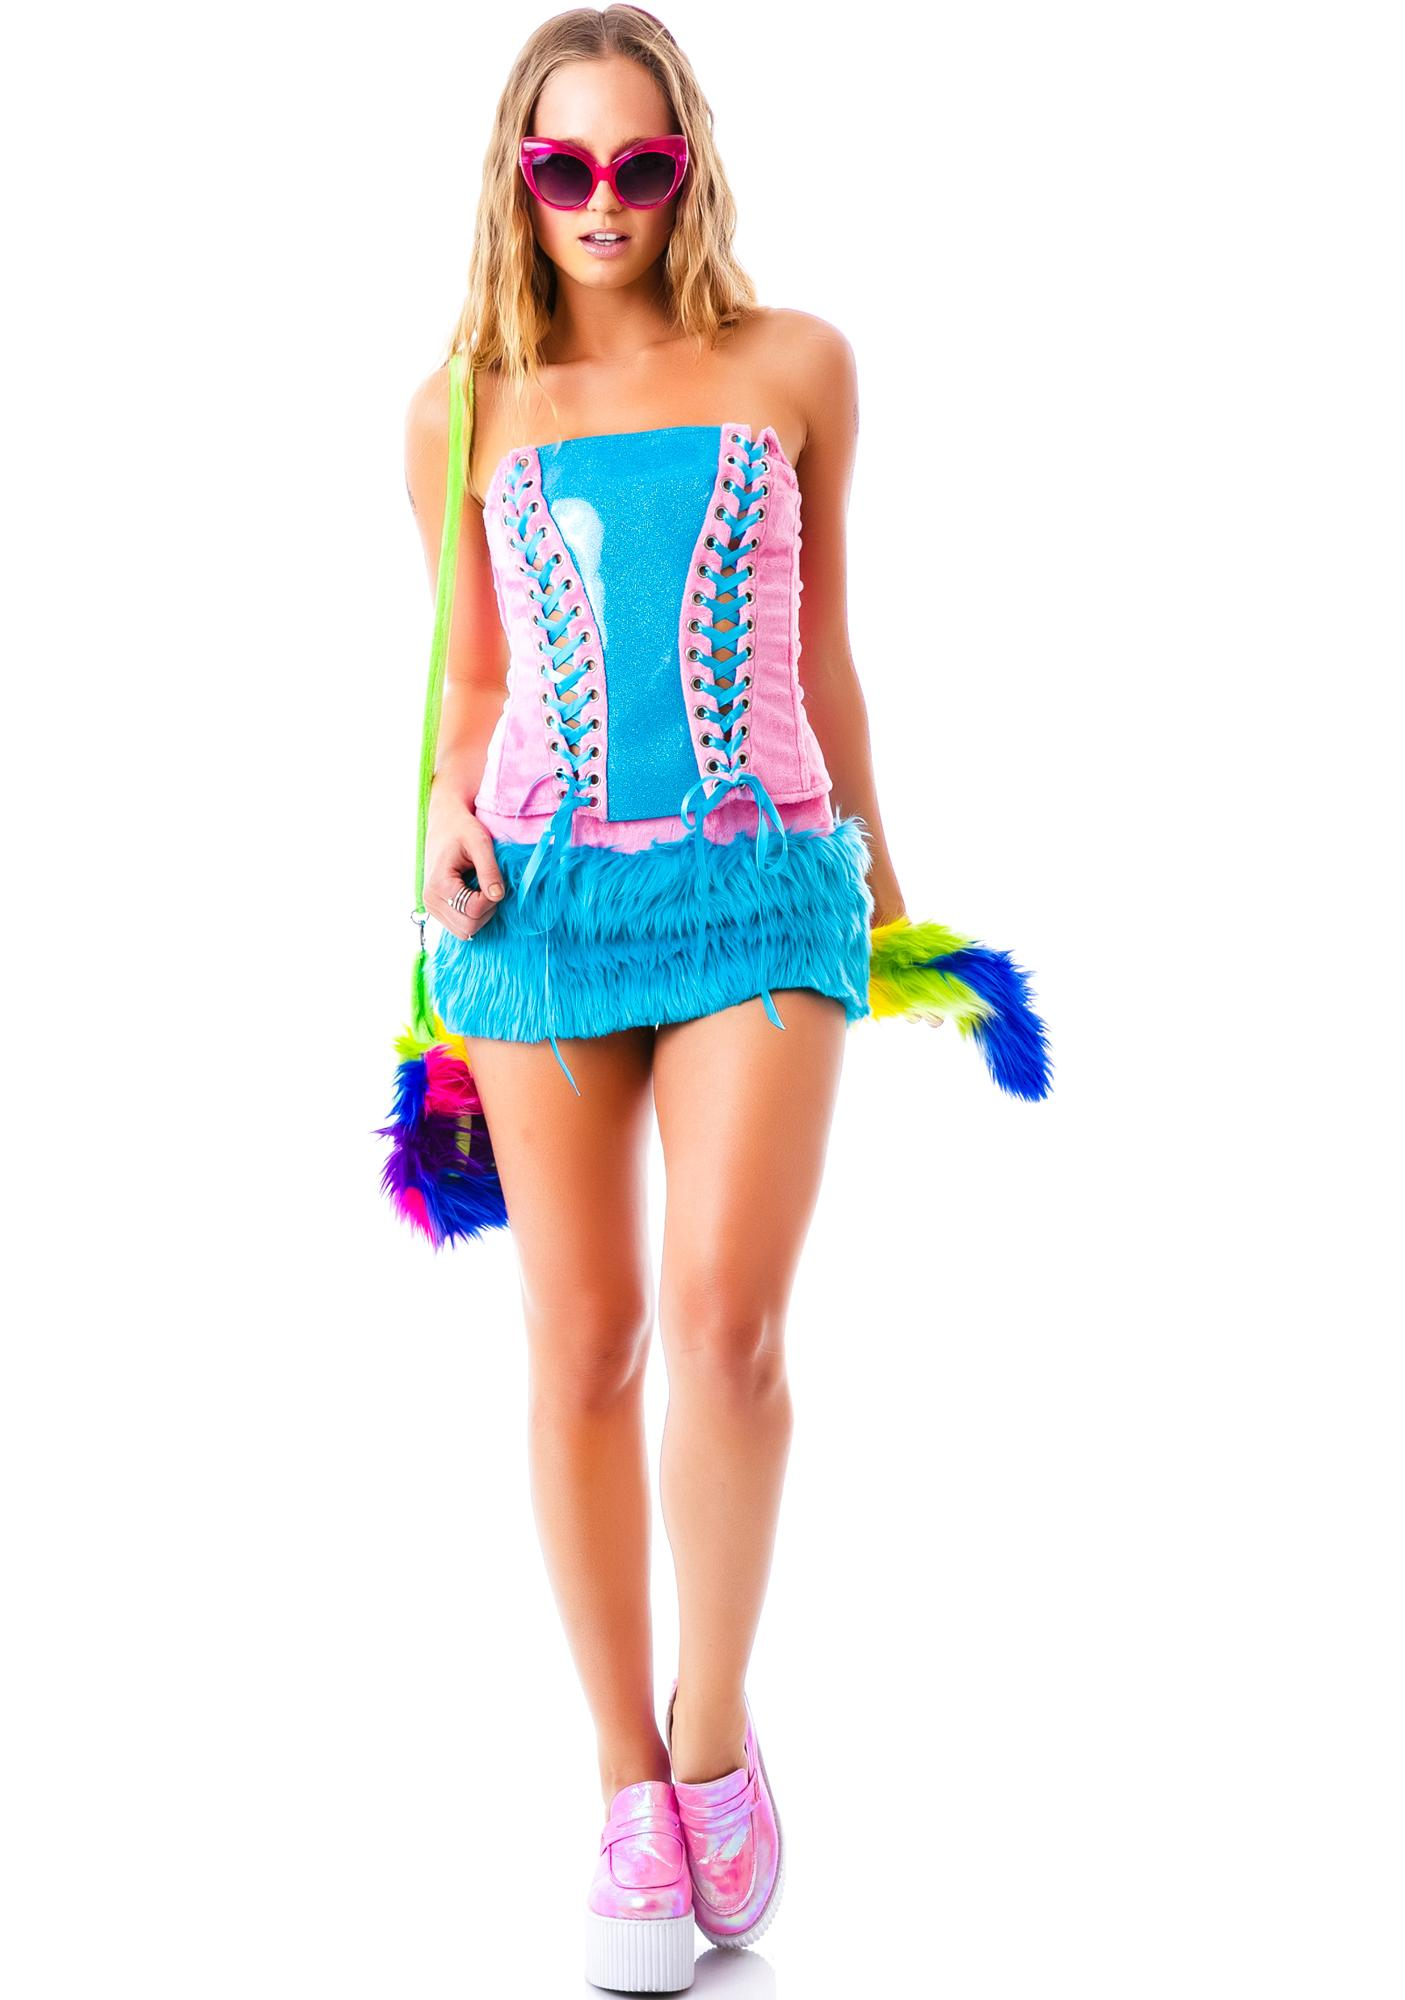 J Valentine My Lil Rainbow Dash Pony Skirt Set